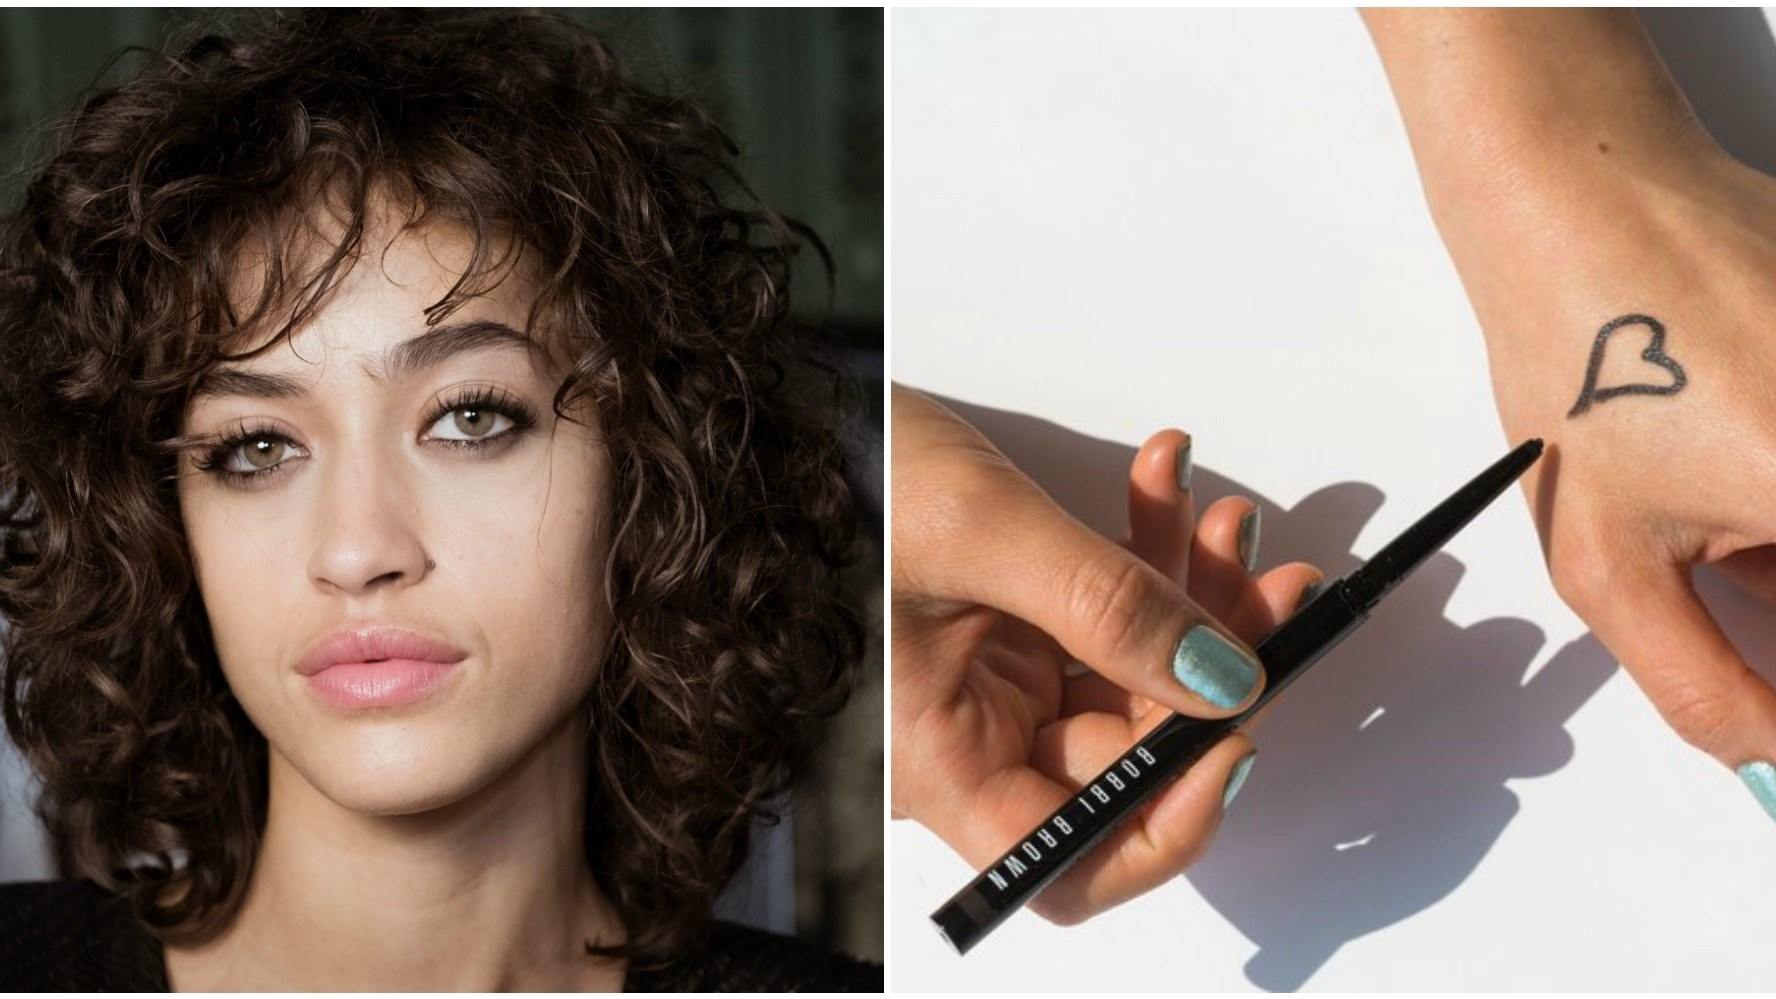 How To Pick The Best Eyeliner For Your Eye Color | Allure with regard to Mac Eyeliner For Green Eyes